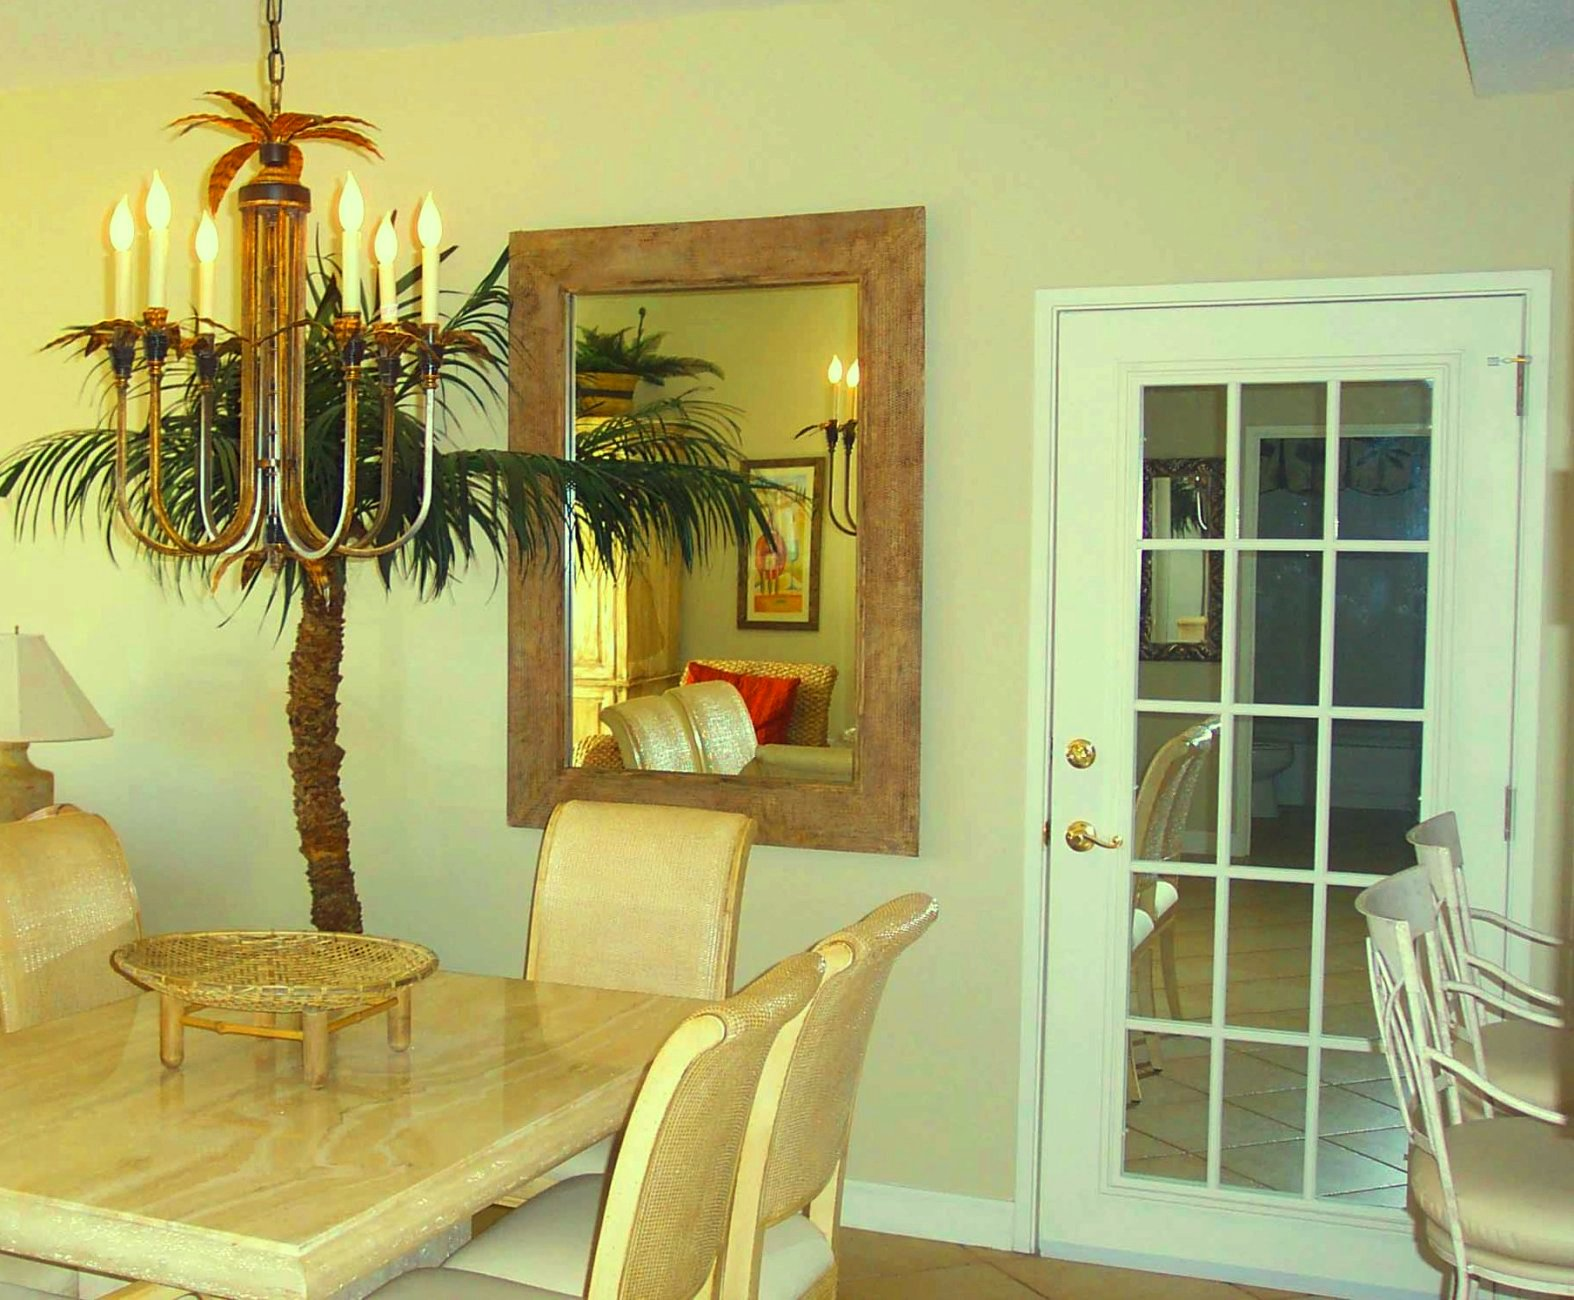 Interior Design Ideas Gave This Greensboro, NC Homeowner Several Options!